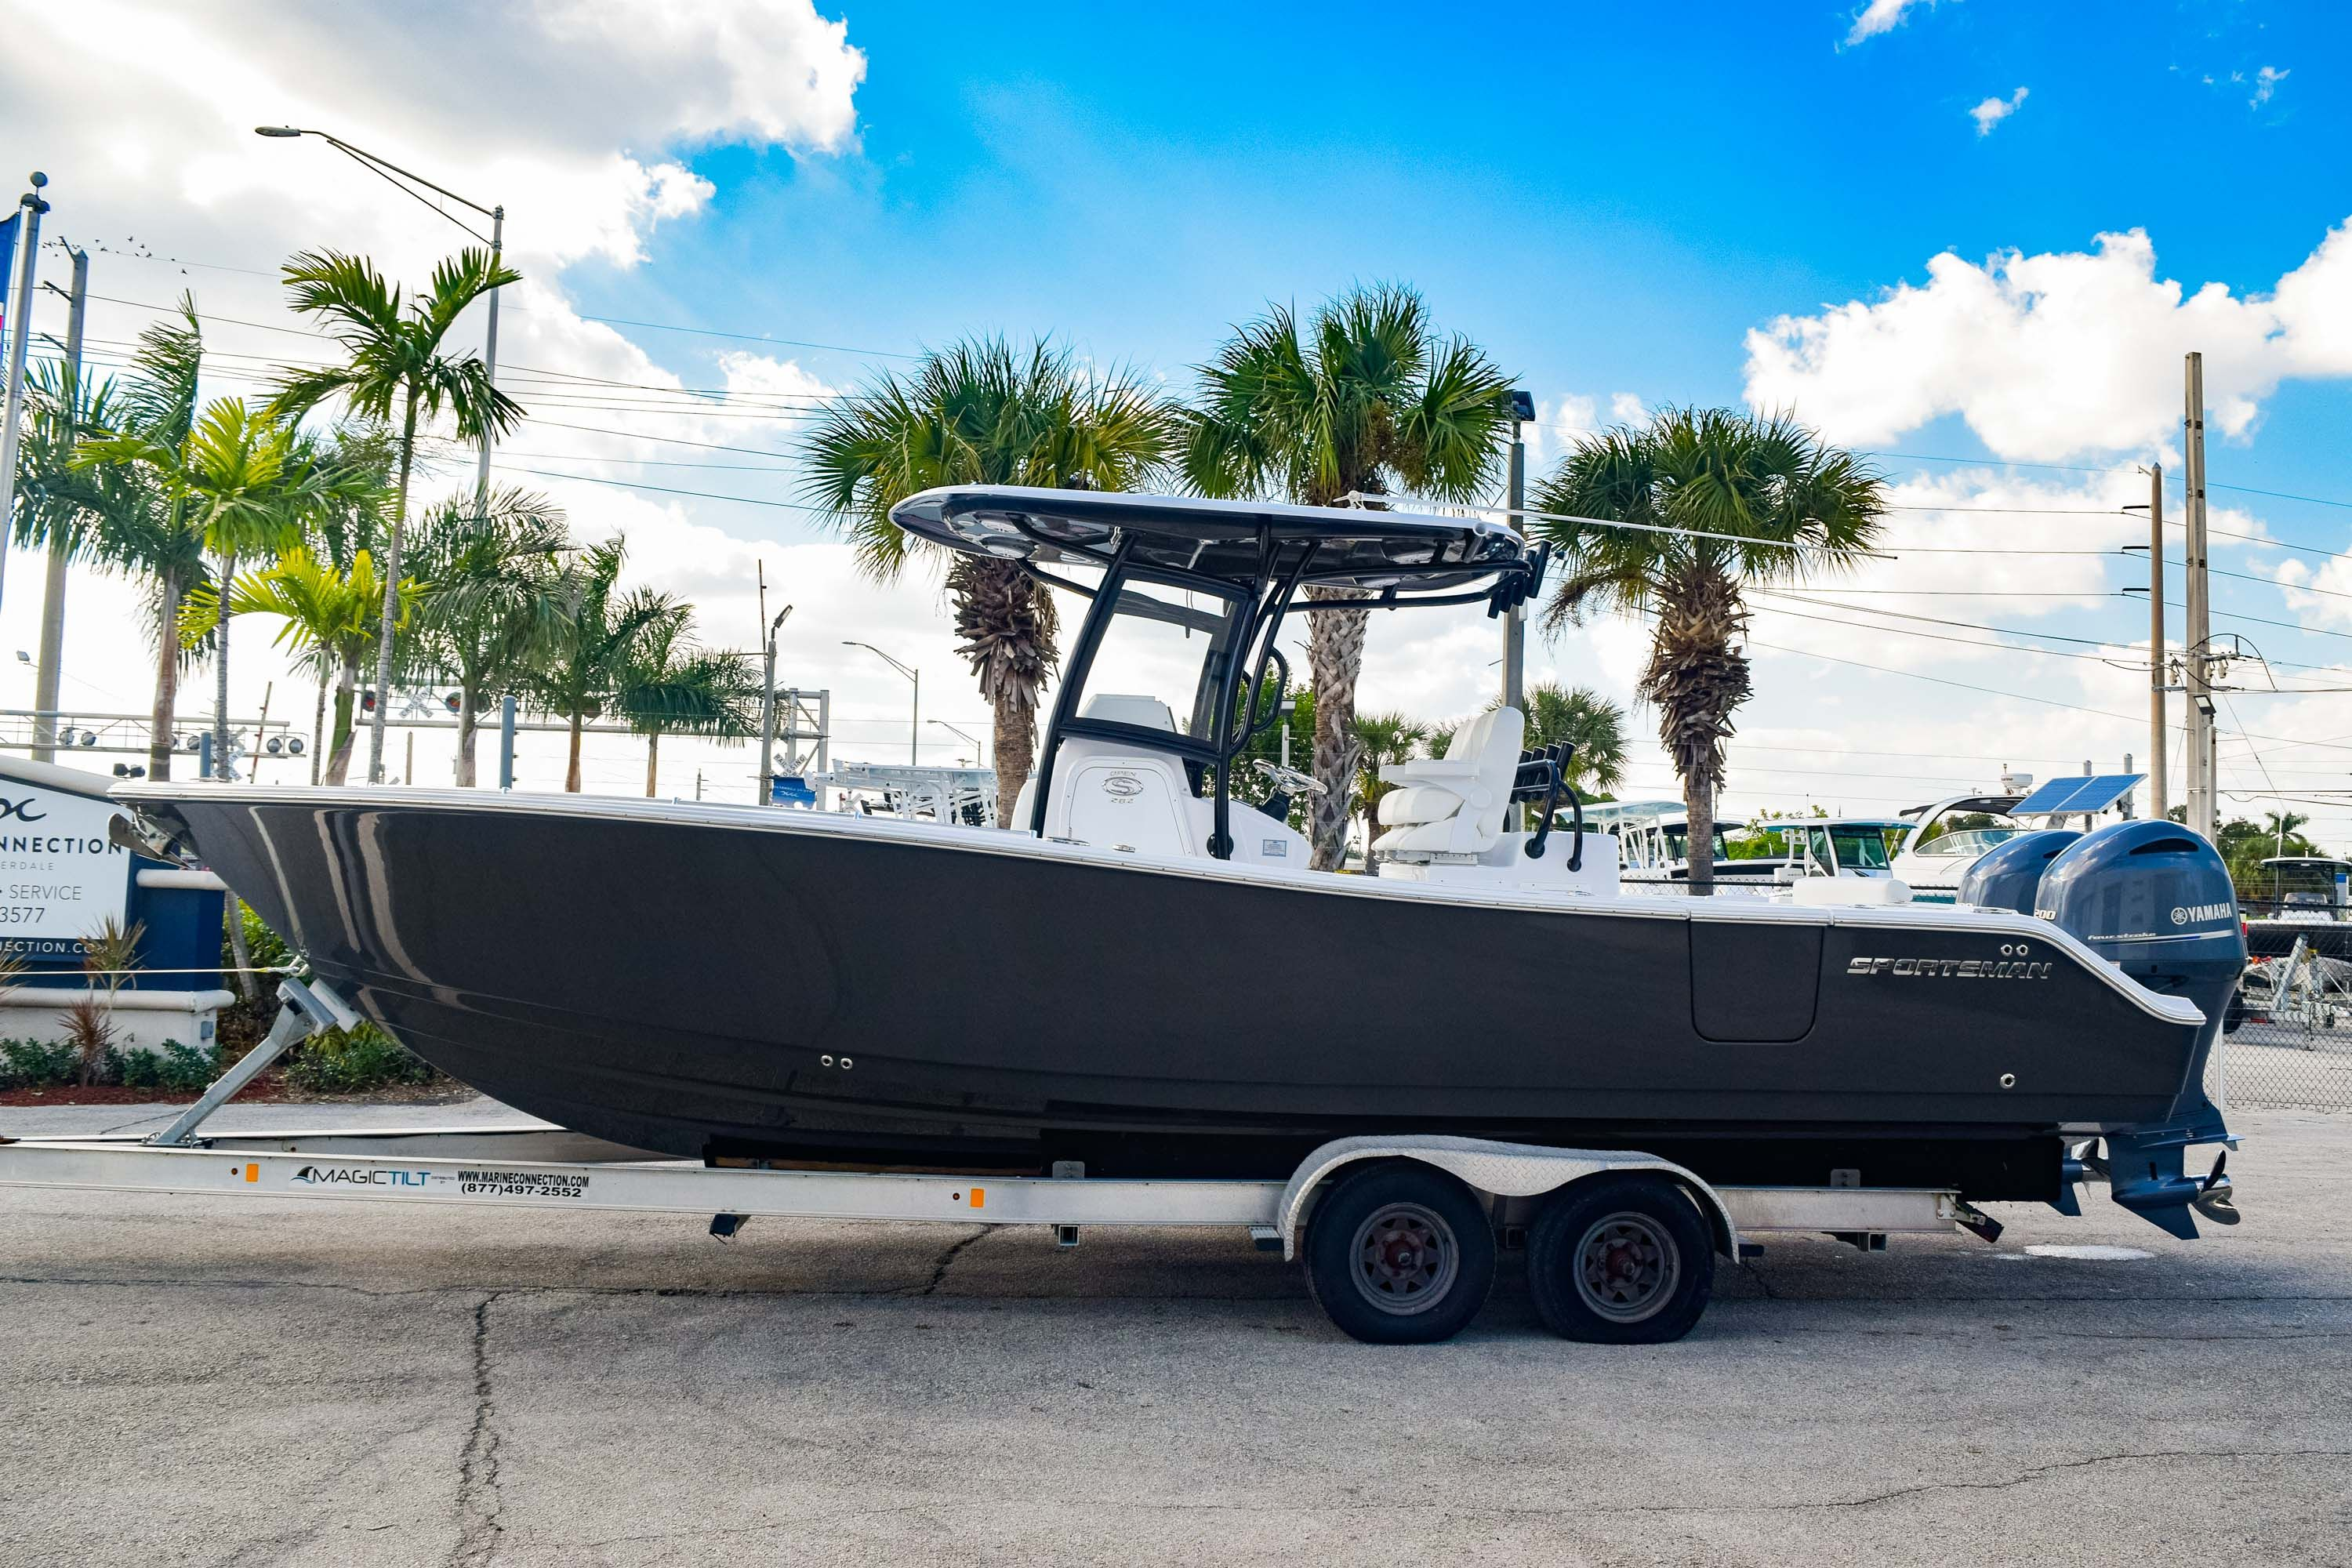 Thumbnail 4 for New 2020 Sportsman Open 282 Center Console boat for sale in Fort Lauderdale, FL